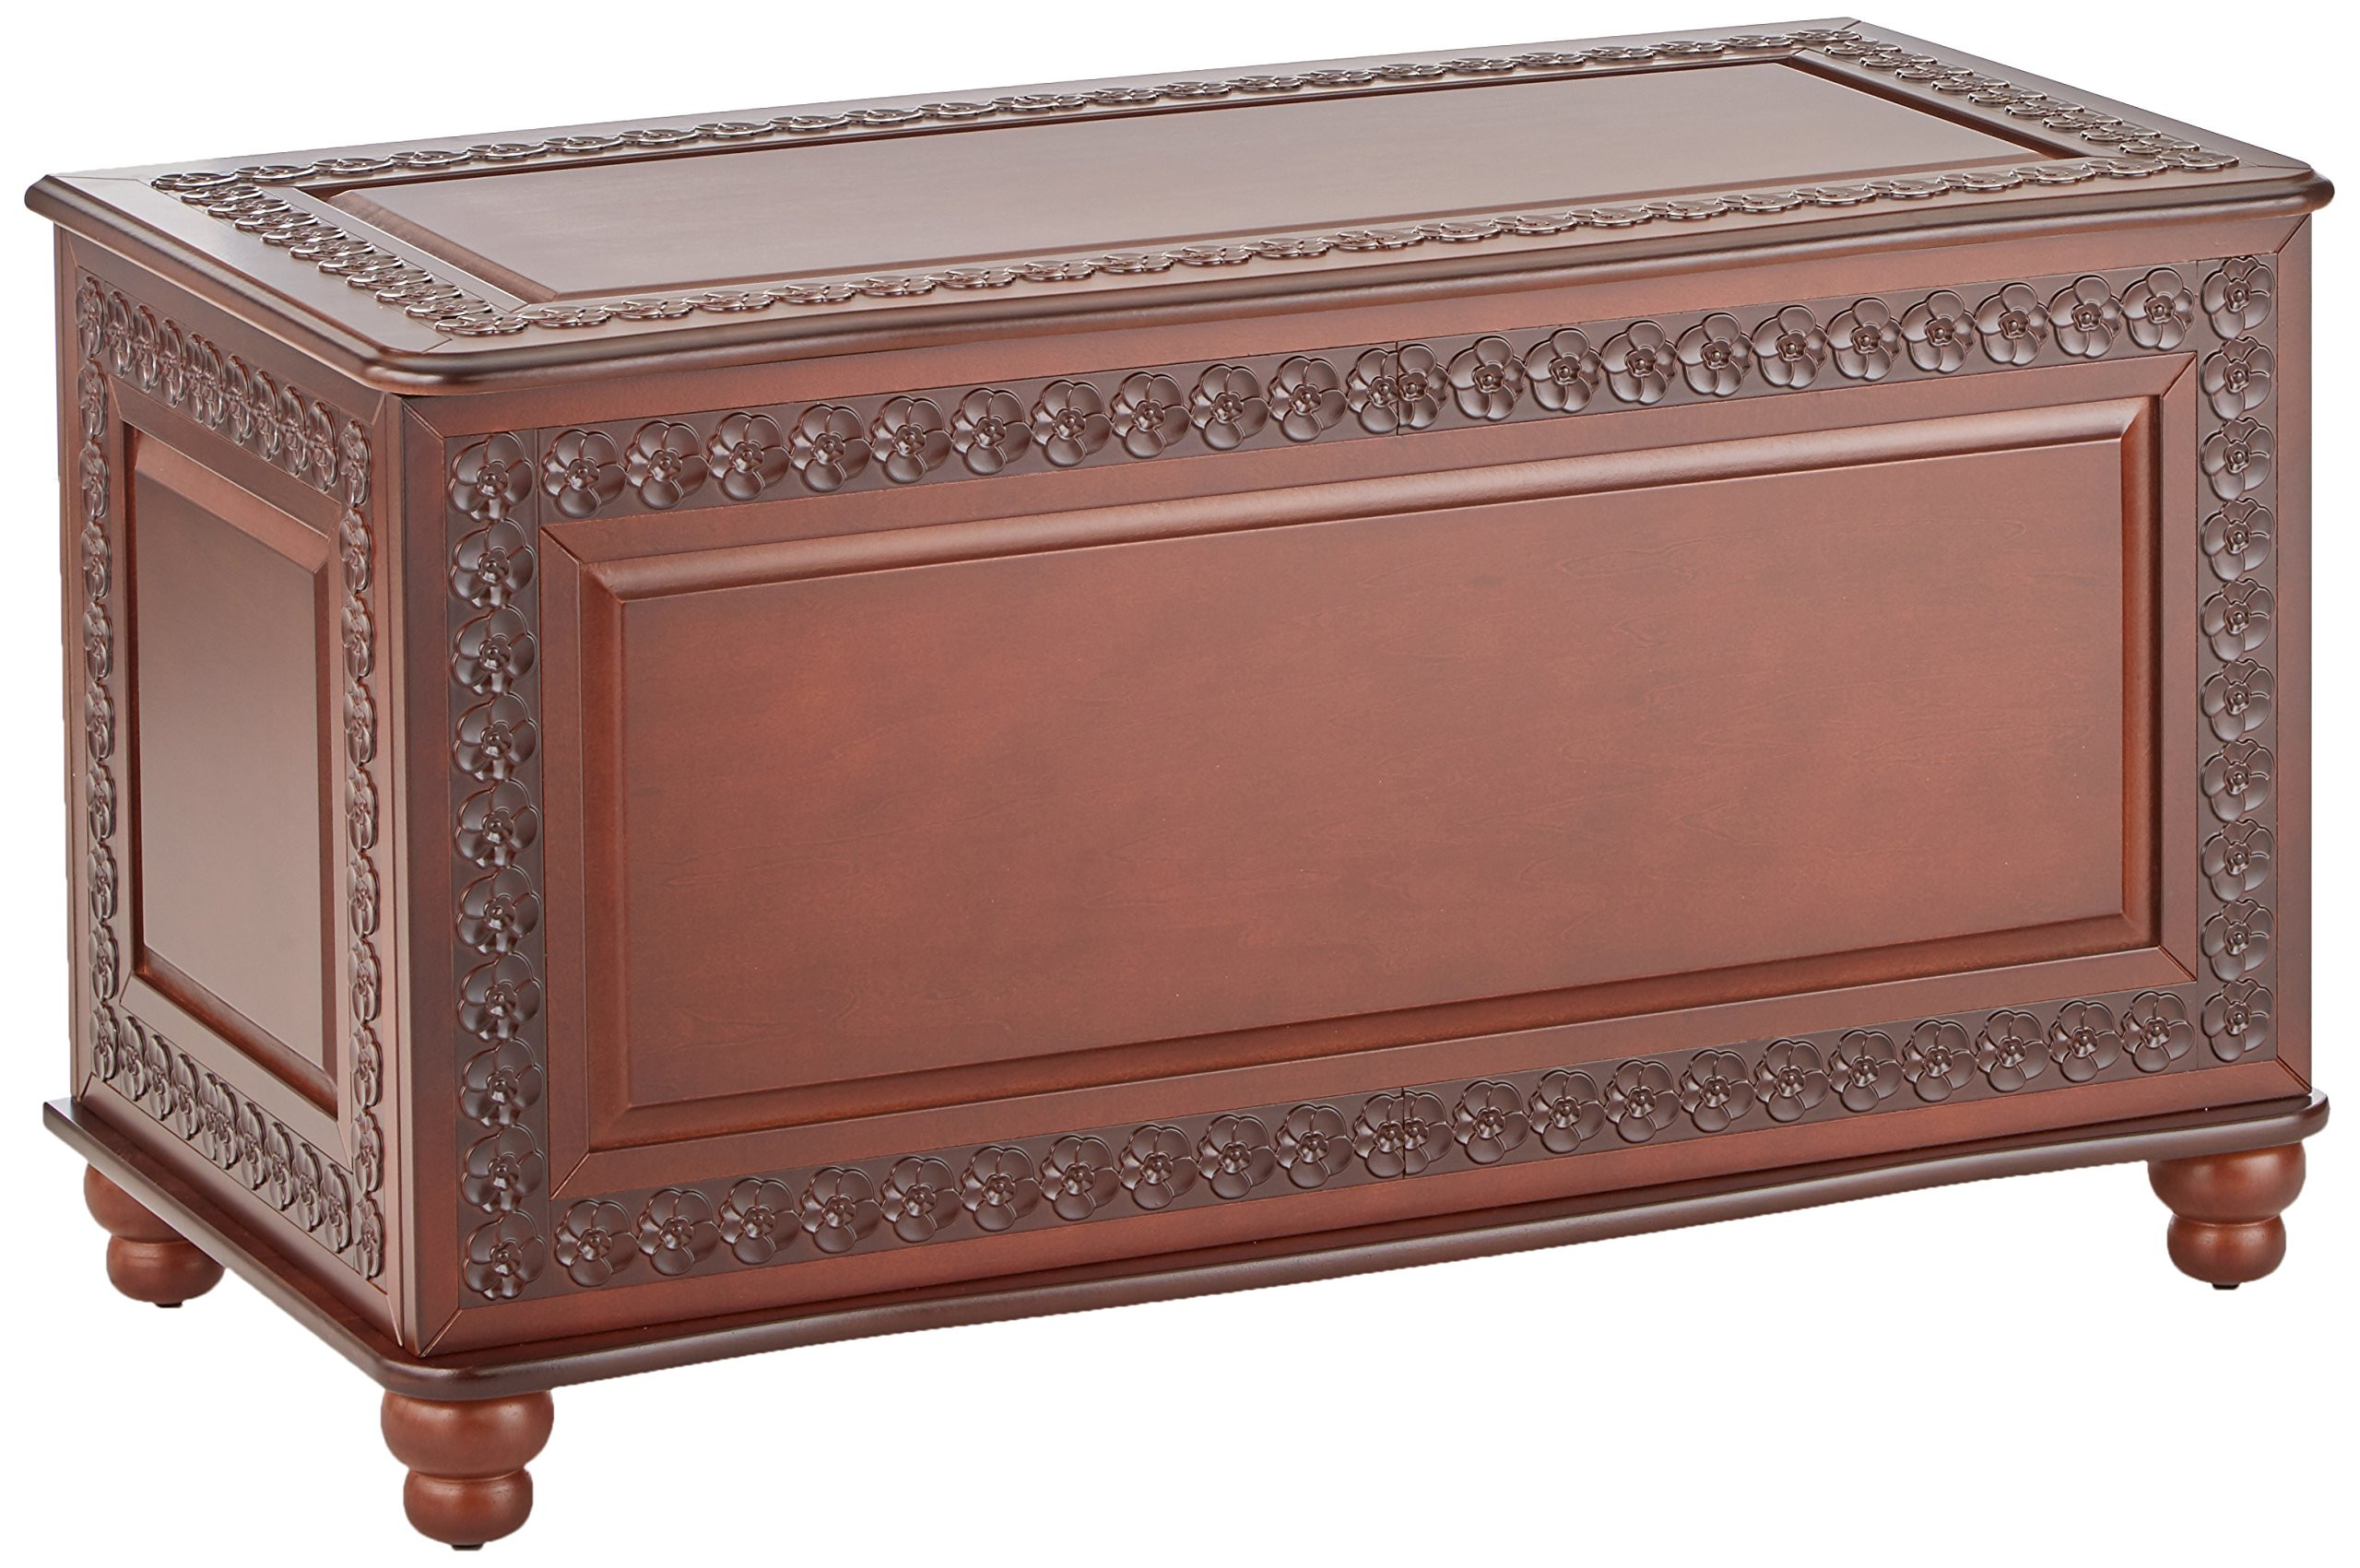 Coaster Home Furnishings  Traditional Cedar Lined Storage Trunk Hope Chest - Deep Tobacco by Coaster Home Furnishings